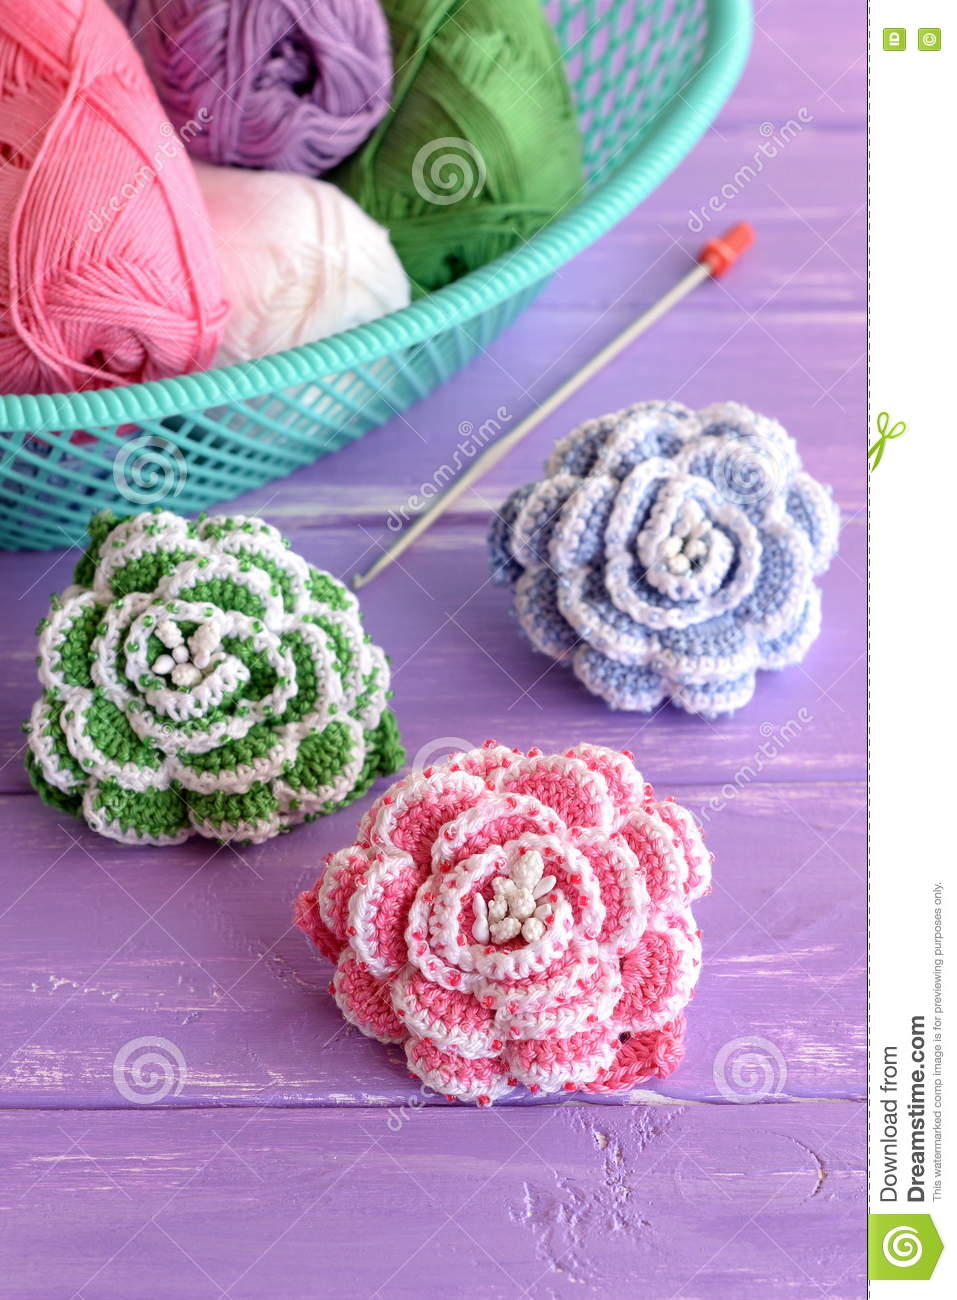 Pink Green And Blue Crochet Flowers Decorated With Beads Cotton